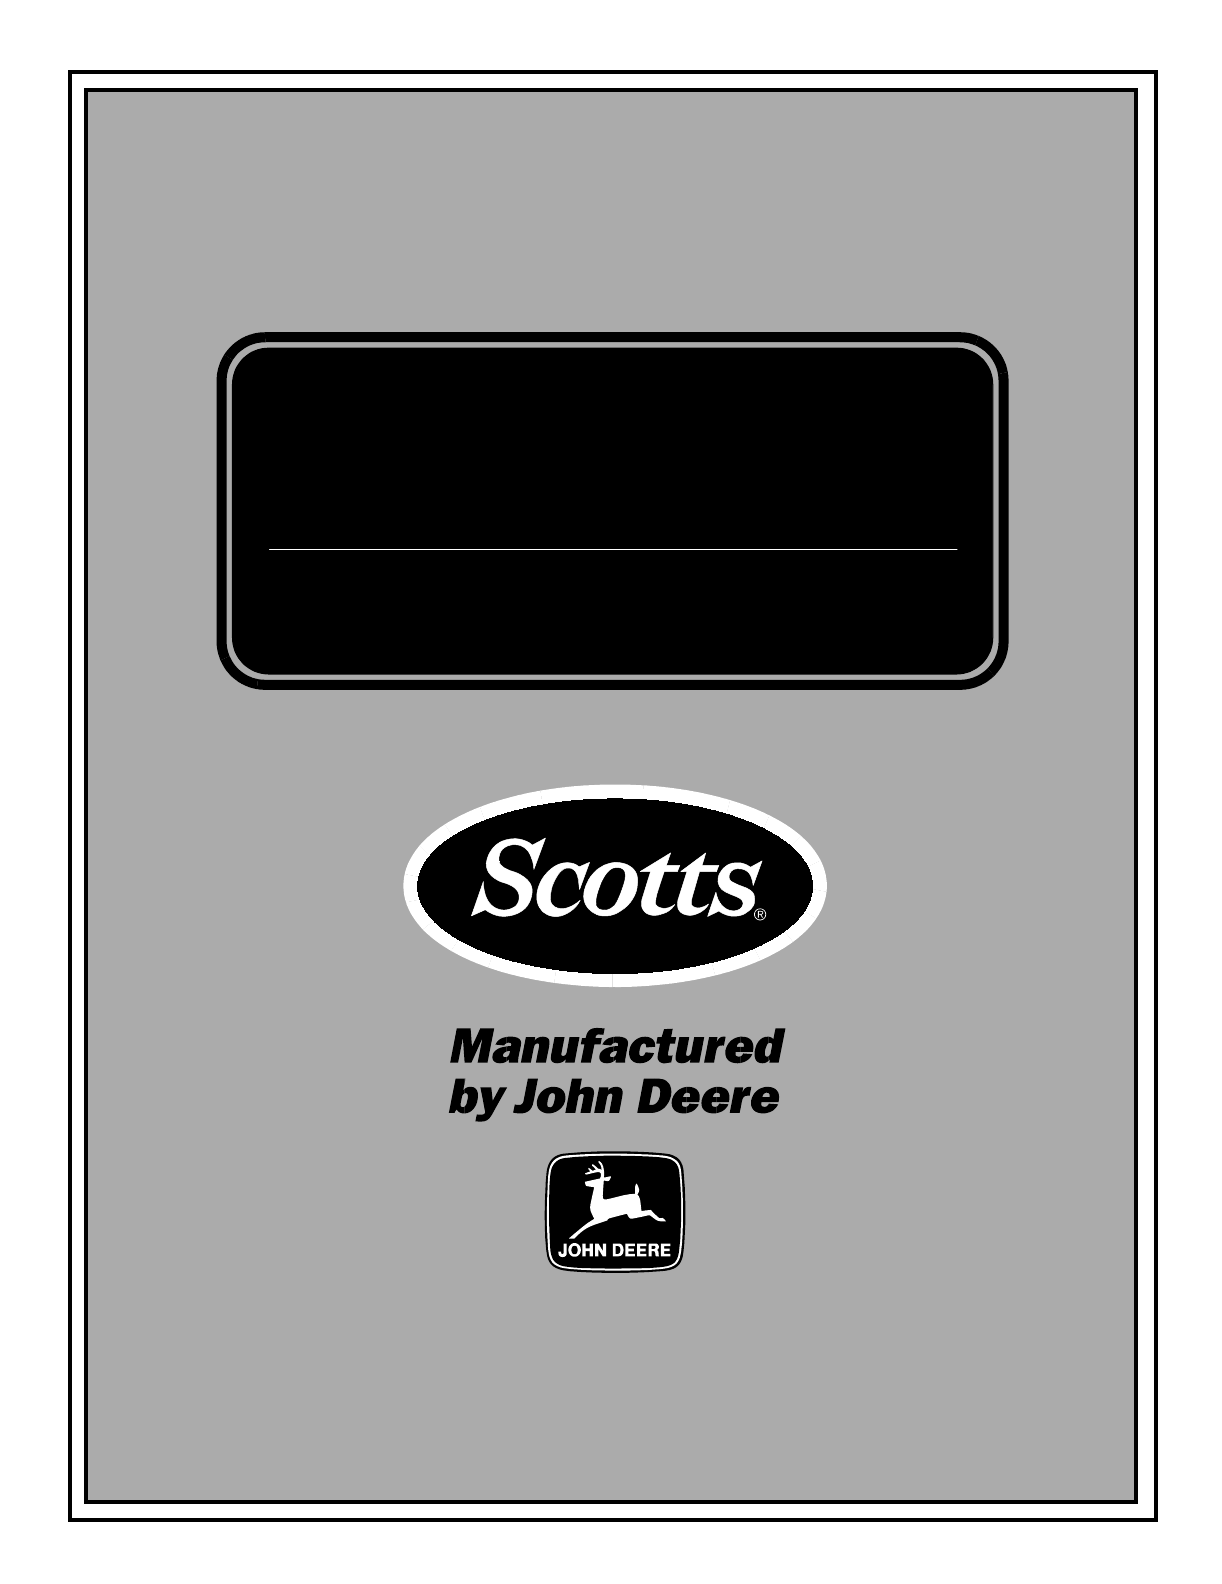 2141e15a 36a6 9594 0166 6f10fba50f44 bg1 scotts lawn mower s1642, s1742, s2046 user guide manualsonline com scotts s1742 wiring diagram at soozxer.org